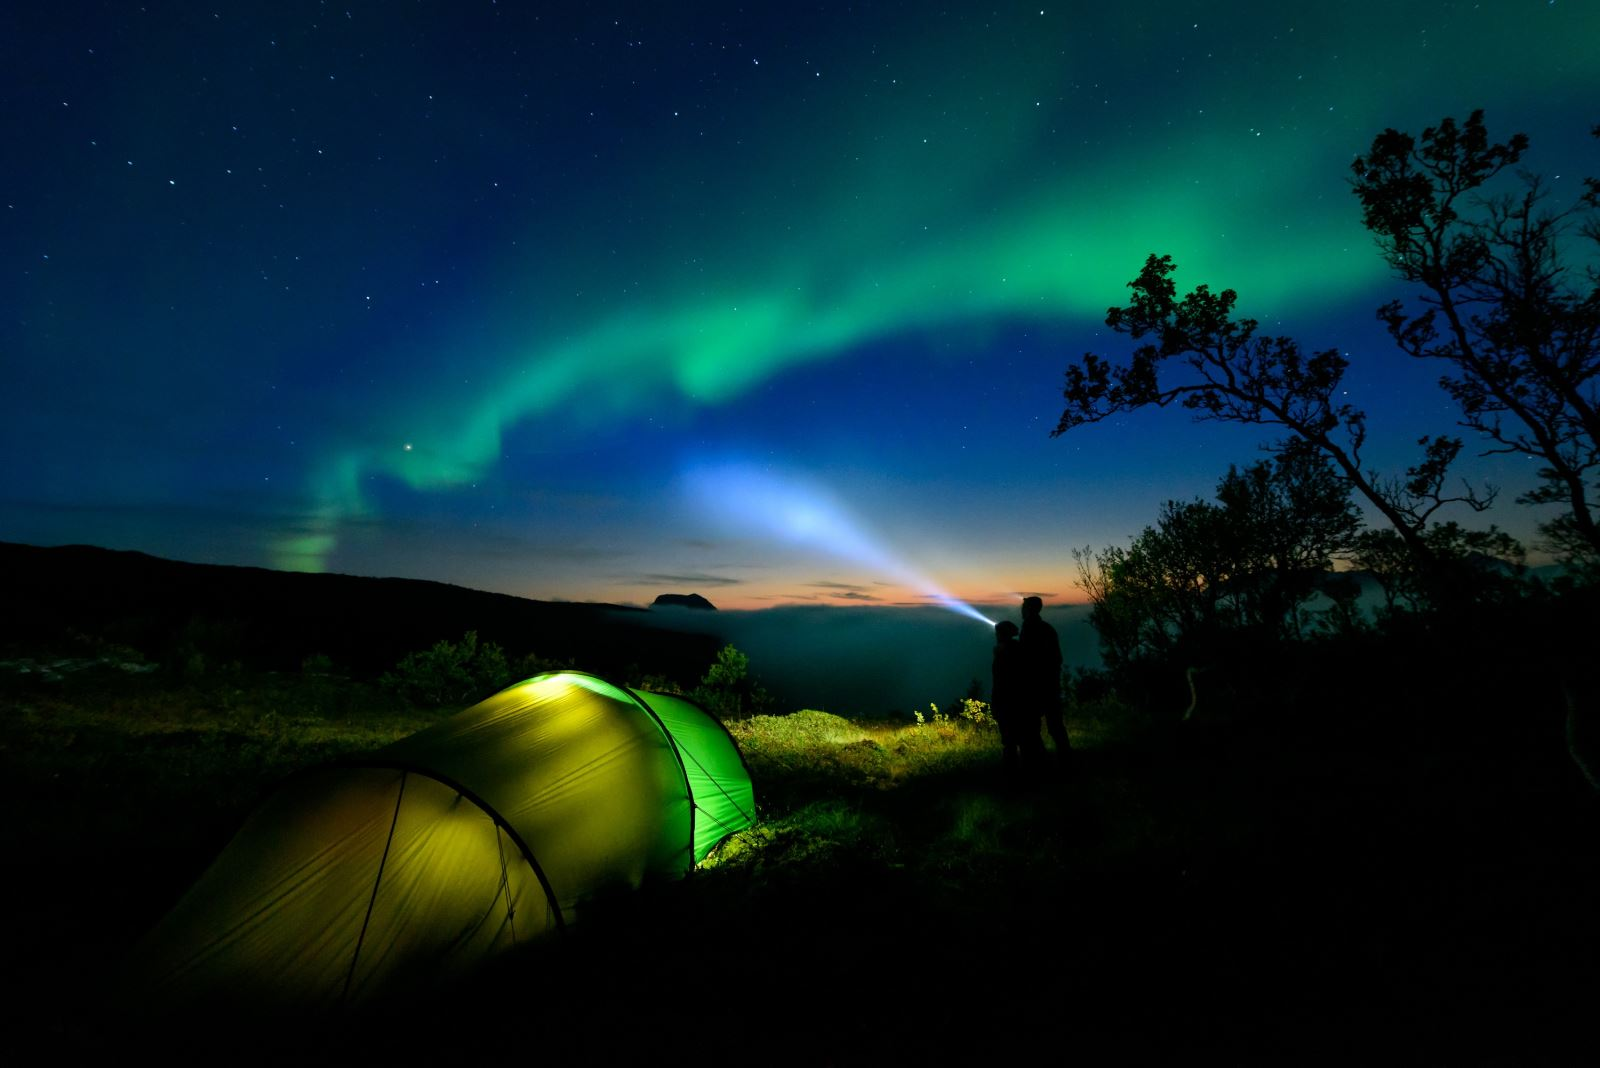 Stories About The Northern Lights